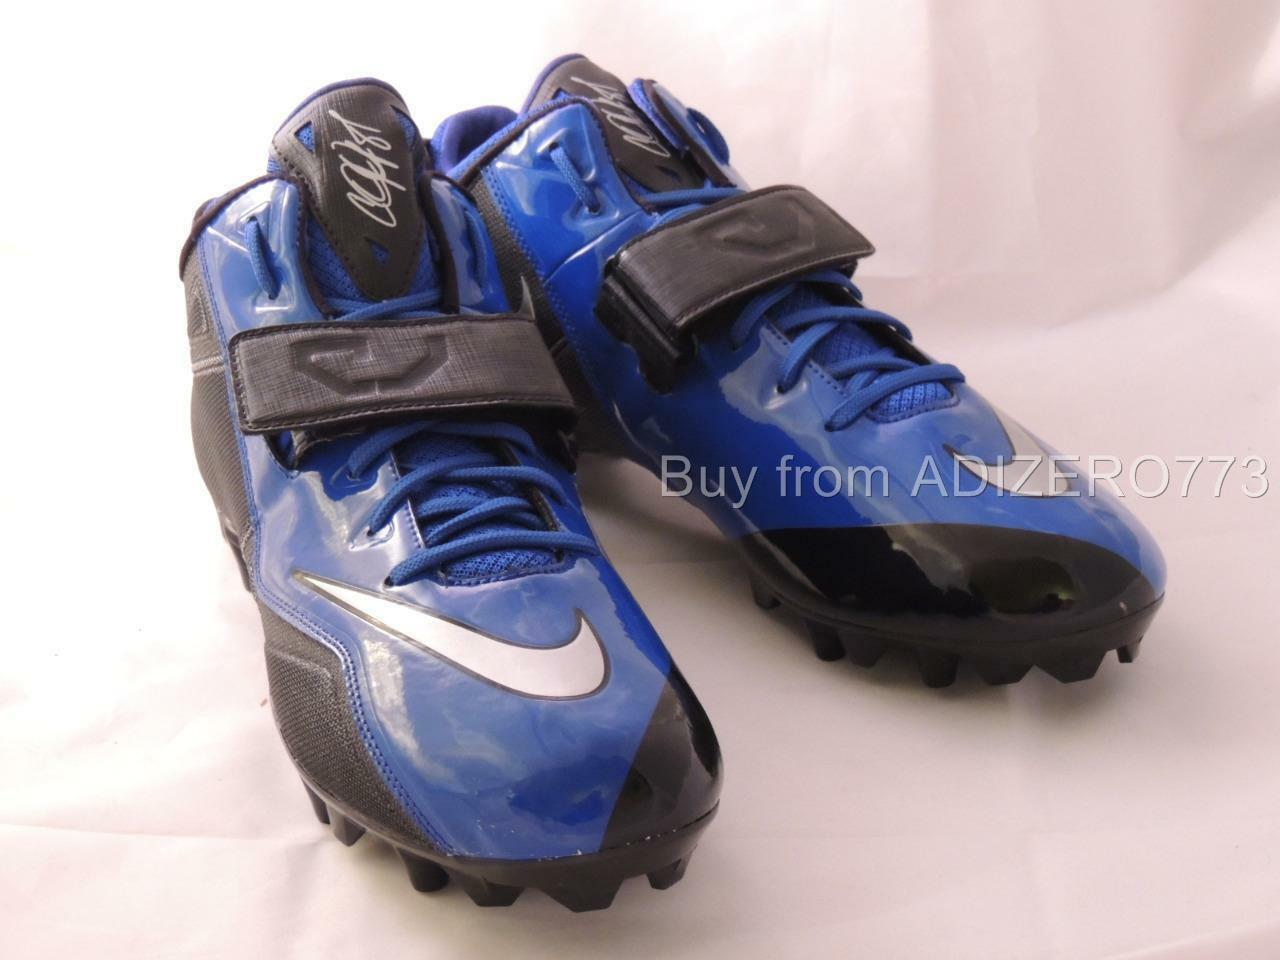 Nike CJ Strike 2 TD Football Cleats Black & bluee 678119 004 Men's 14 US